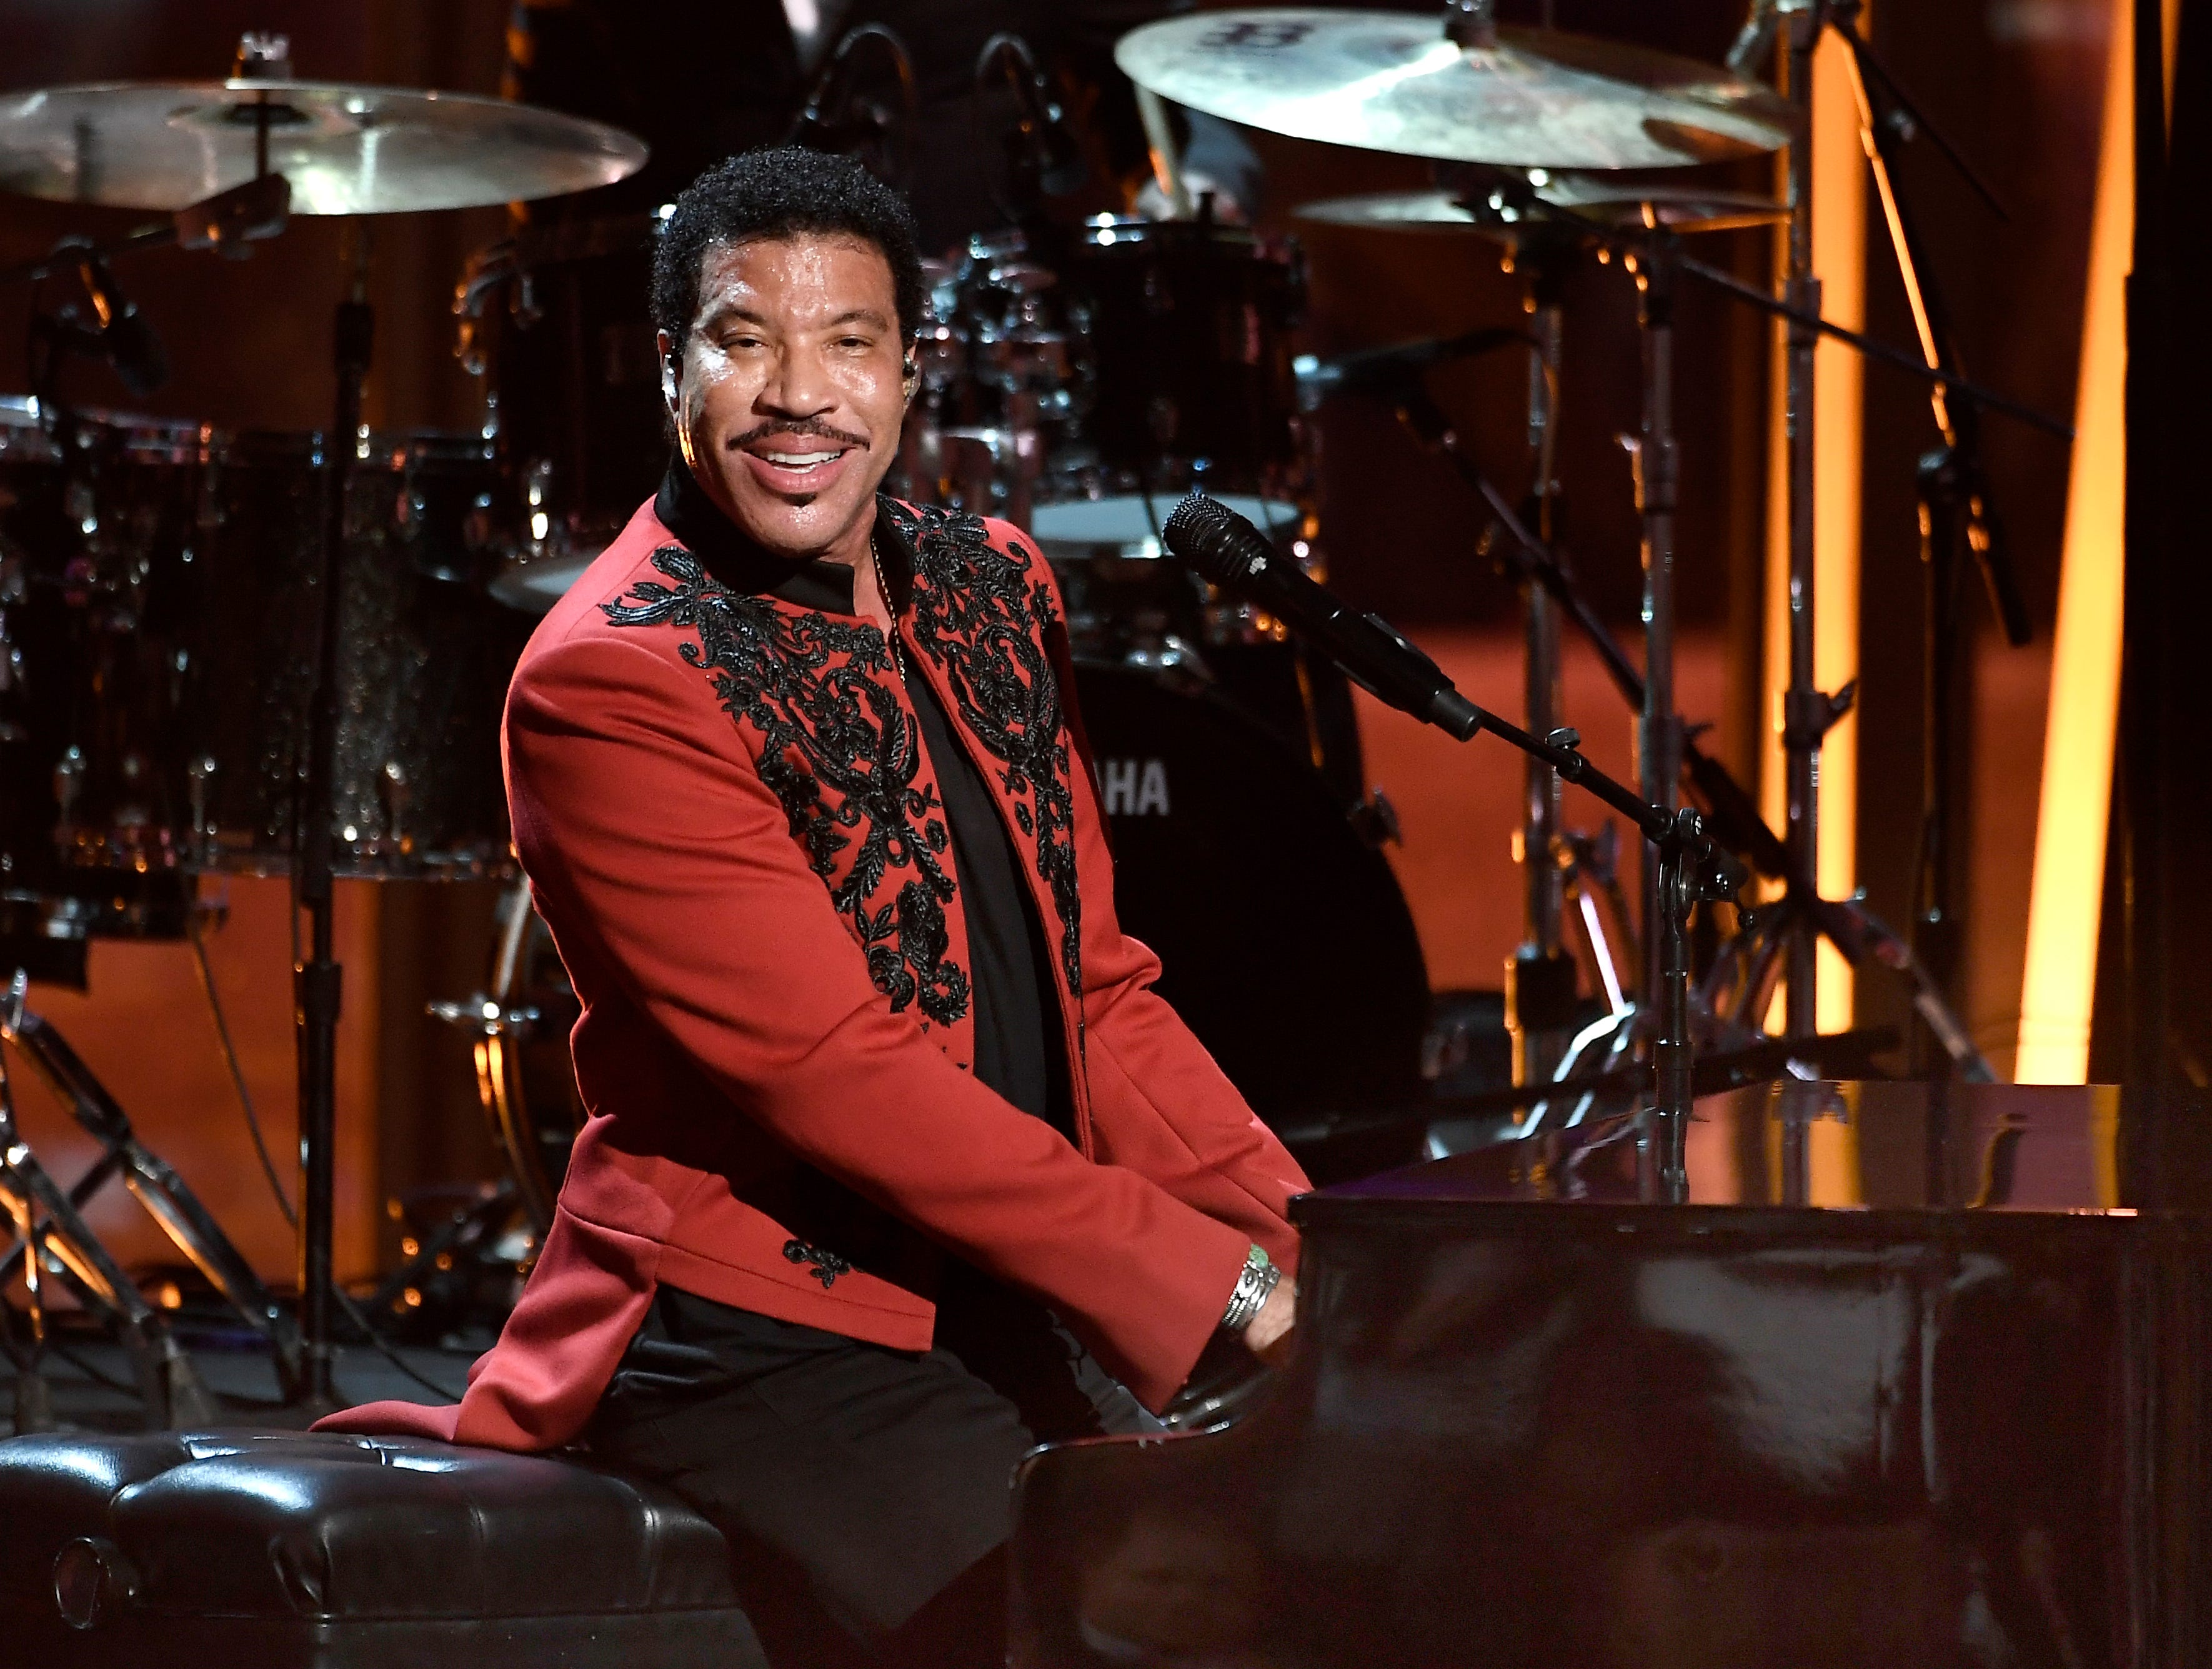 MOUNTAIN VIEW, CA - NOVEMBER 04:  Lionel Richie performs onstage at the 2019 Breakthrough Prize at NASA Ames Research Center on November 4, 2018 in Mountain View, California.  (Photo by Steve Jennings/Getty Images for Breakthrough Prize) ORG XMIT: 775252236 ORIG FILE ID: 1057574528